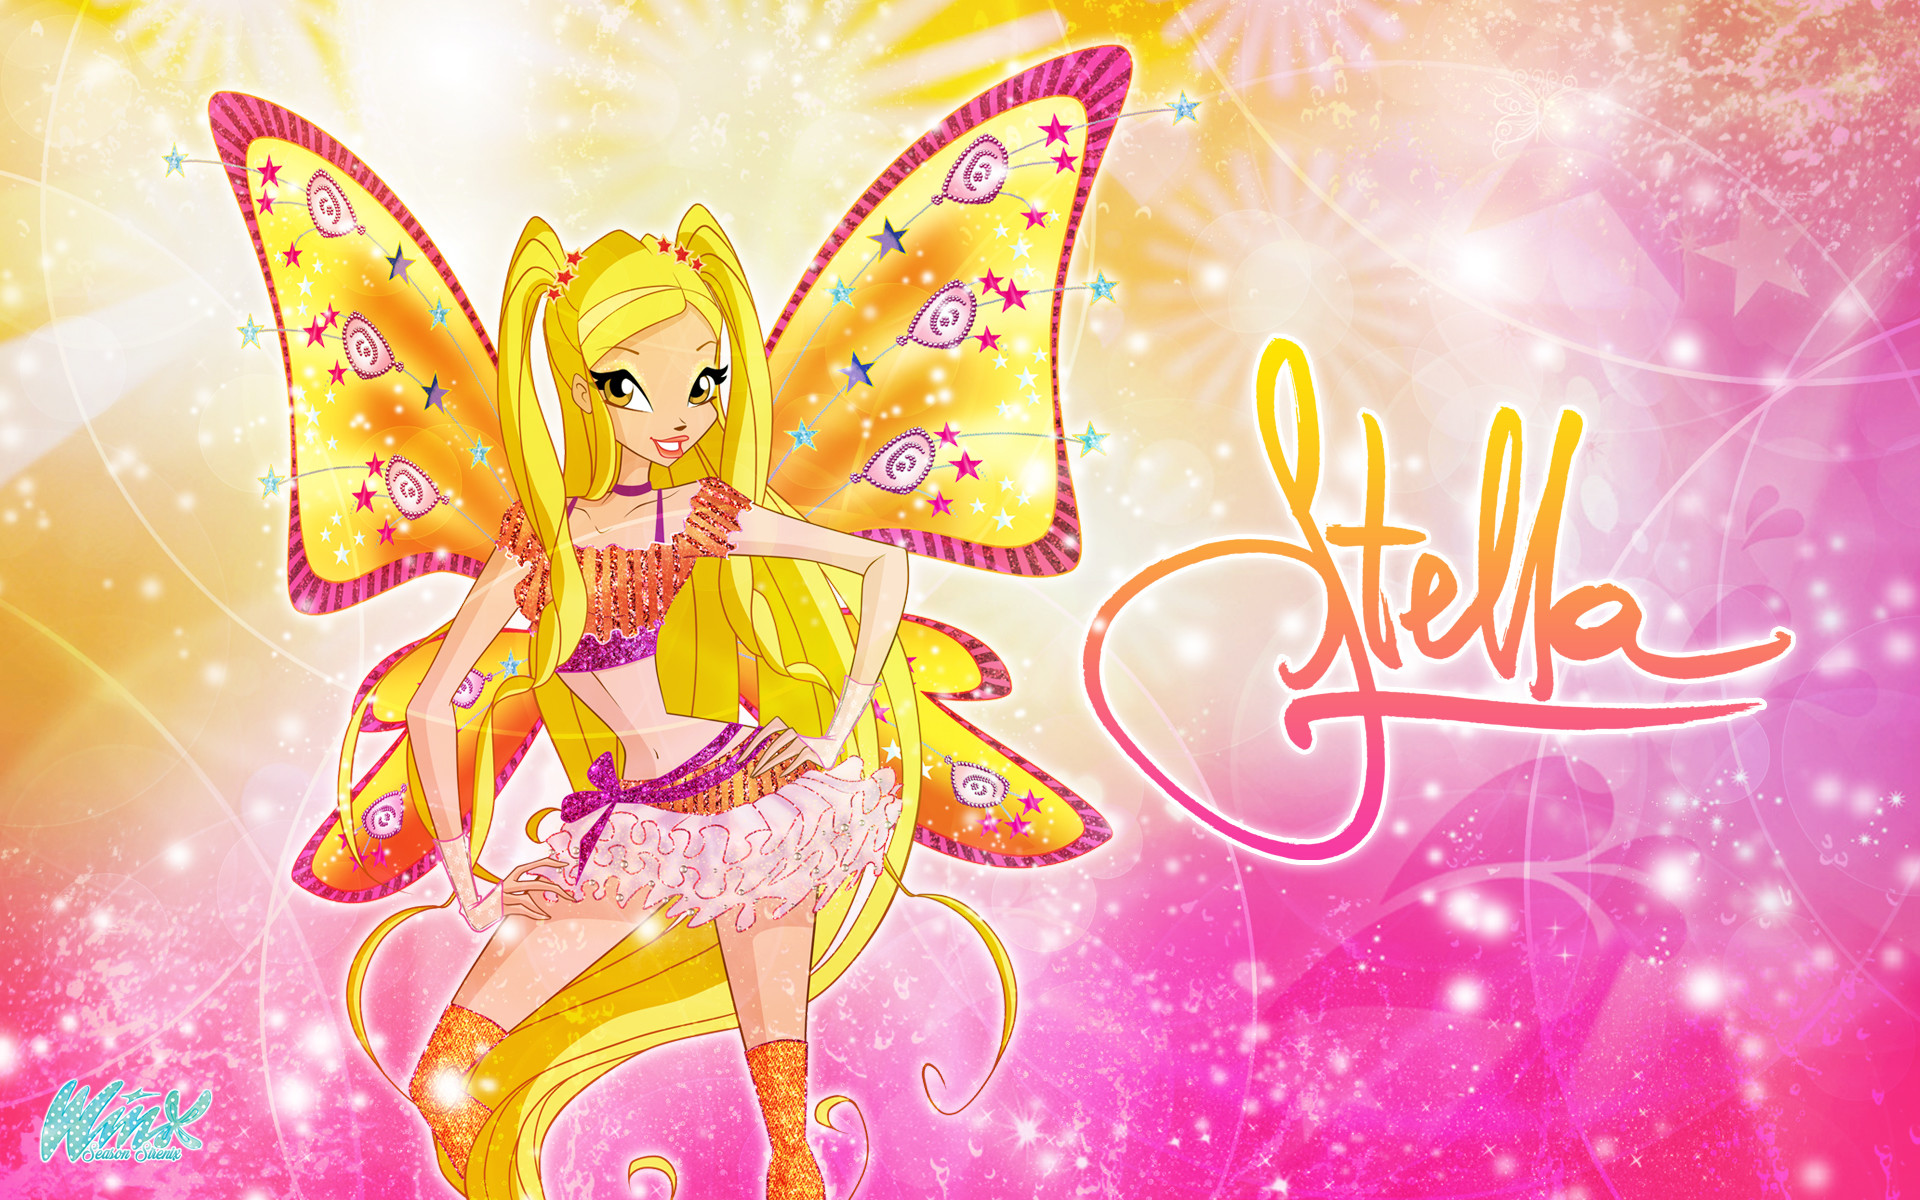 Image Result For Winx Club Bloom Wallpapers Beautiful Winx Club Wallpapers Wallpaper Cave